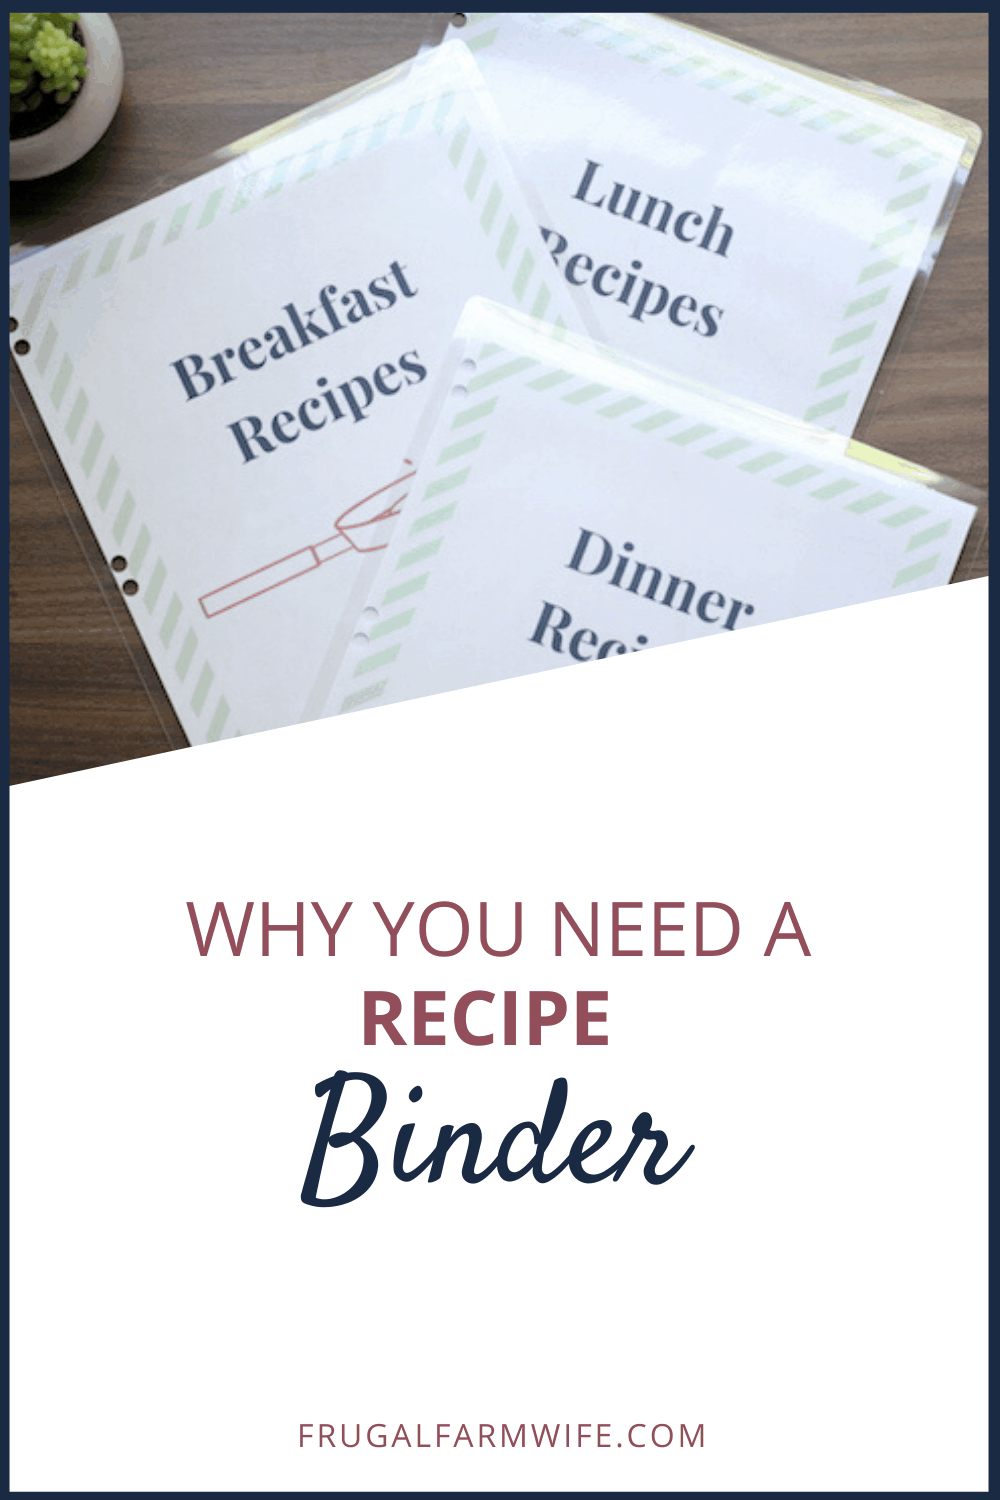 Why you need a recipes binder - this makes so much sense! A recipe binder saves you so much time and effort.